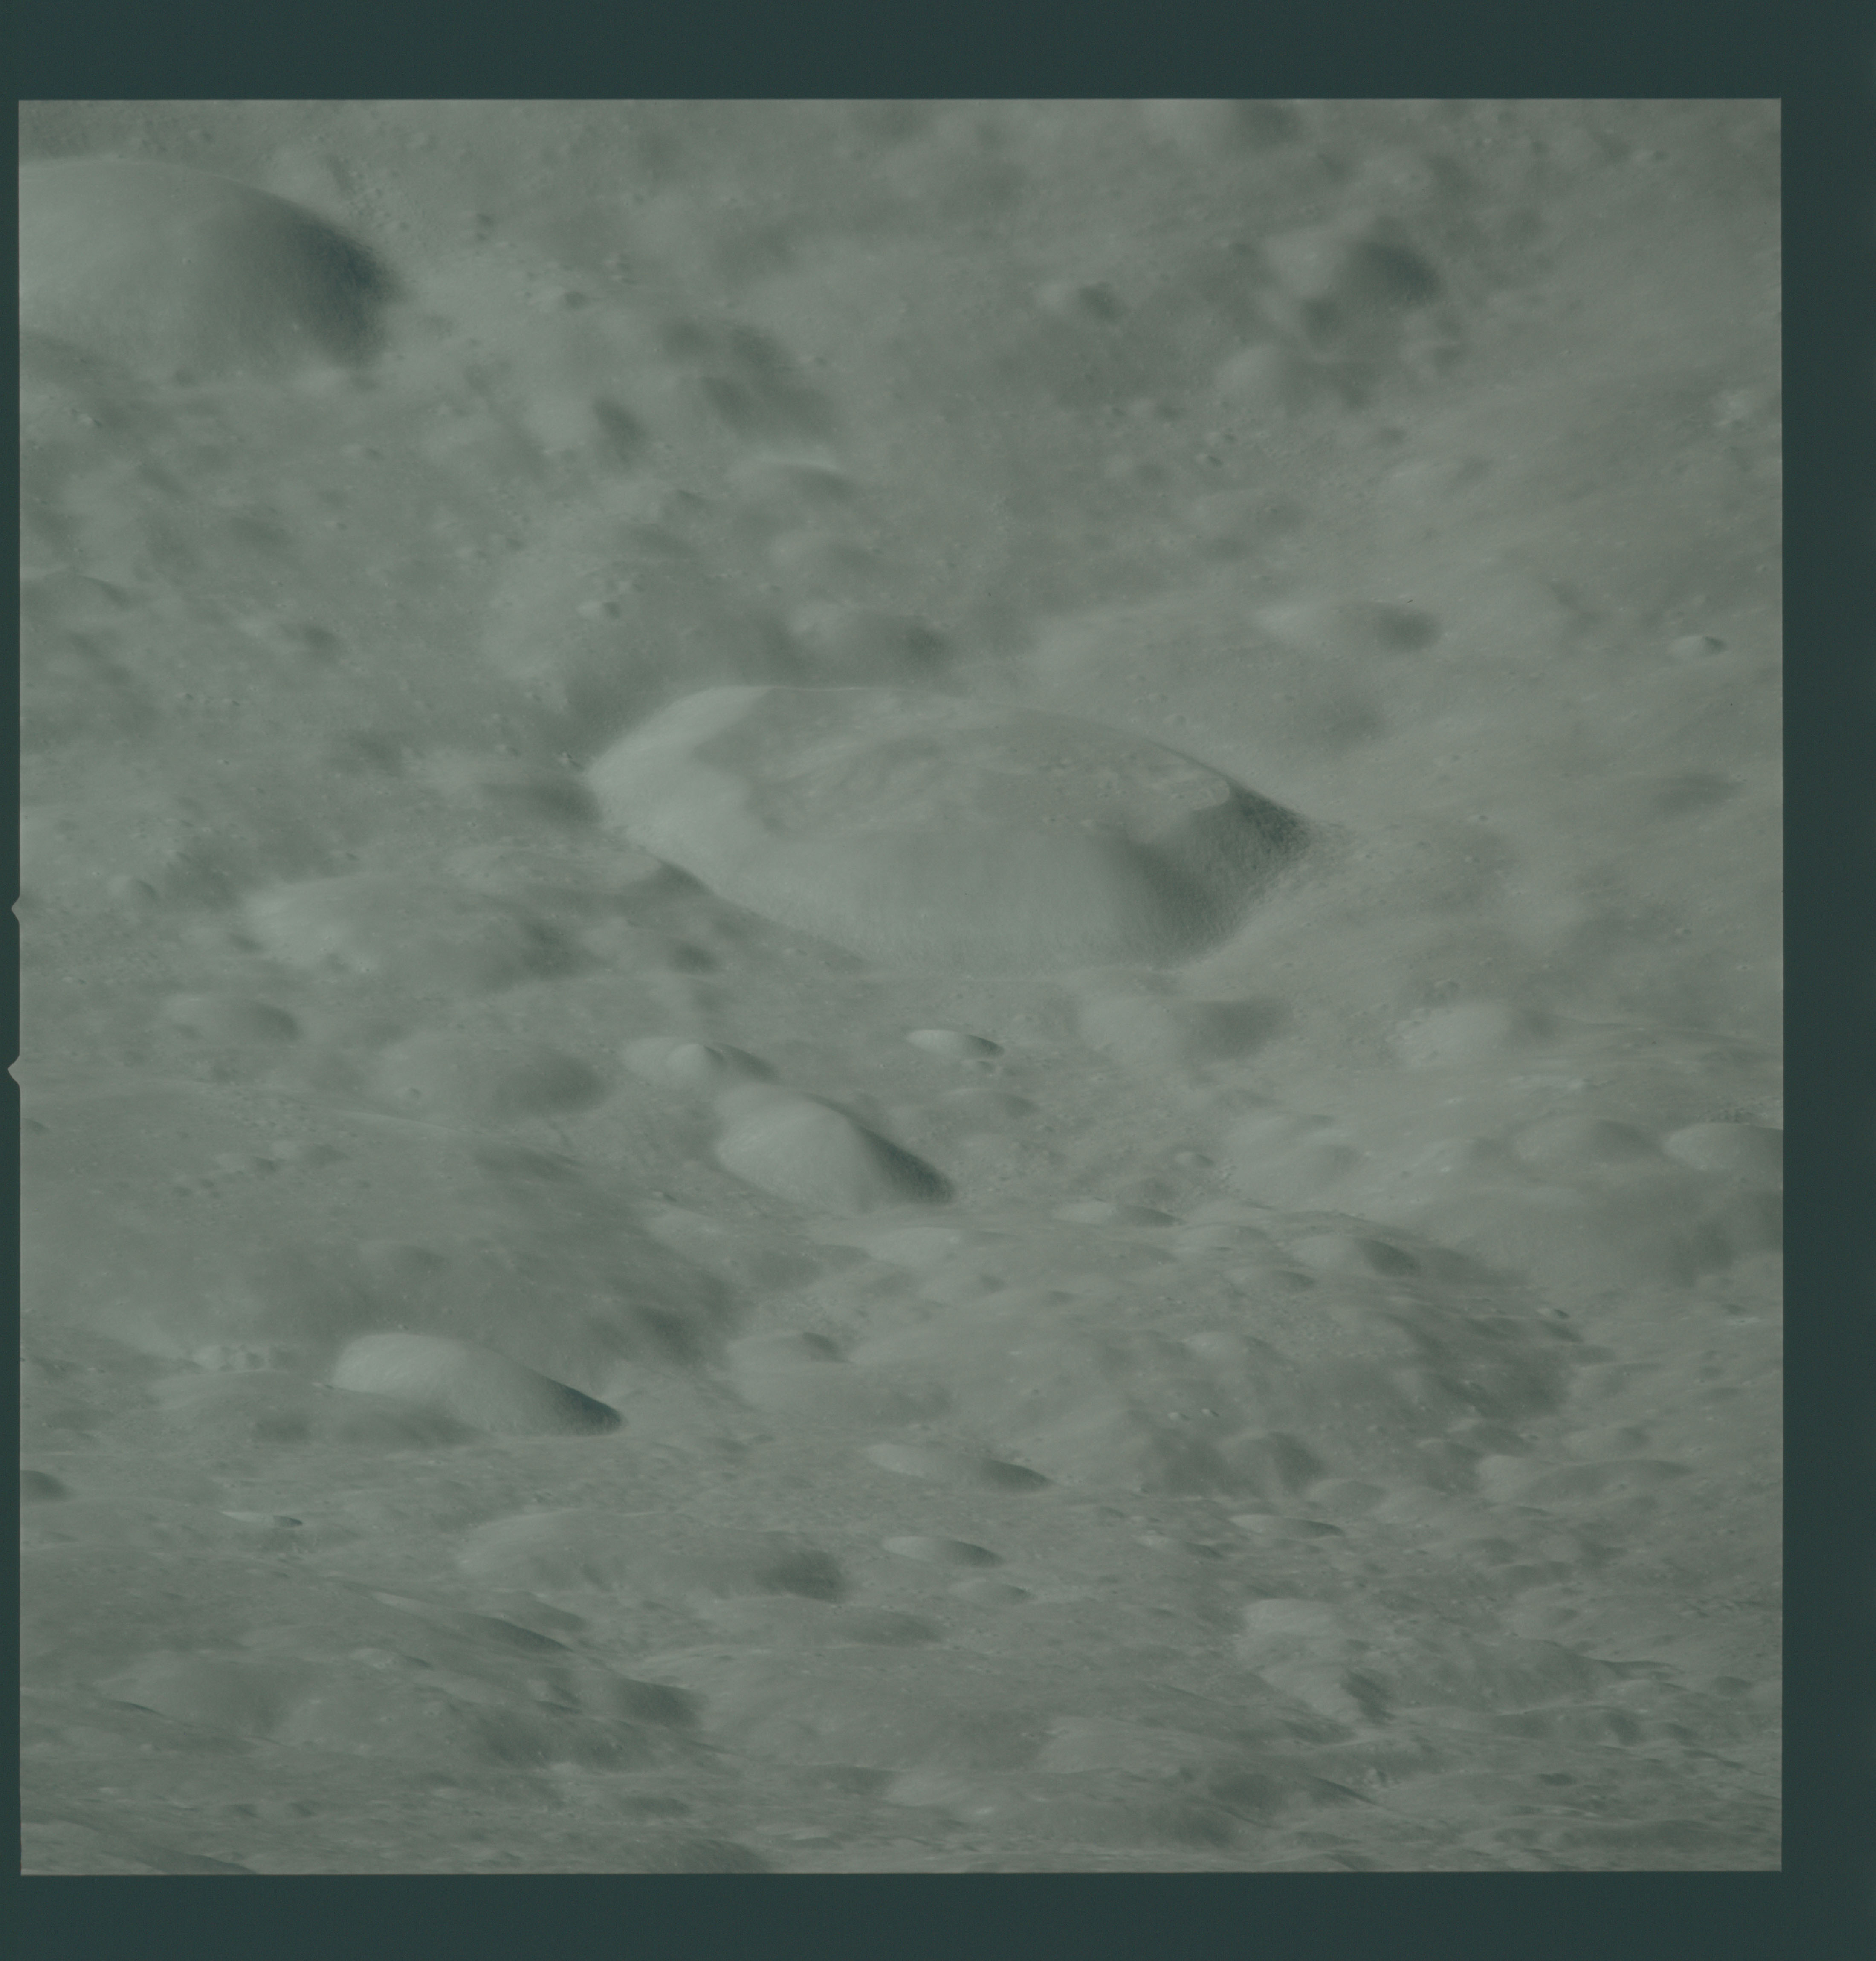 AS16-122-19520 - Apollo 16 - Apollo 16 Mission image - View of the lunar surface north of the of the Ostwald Crater.